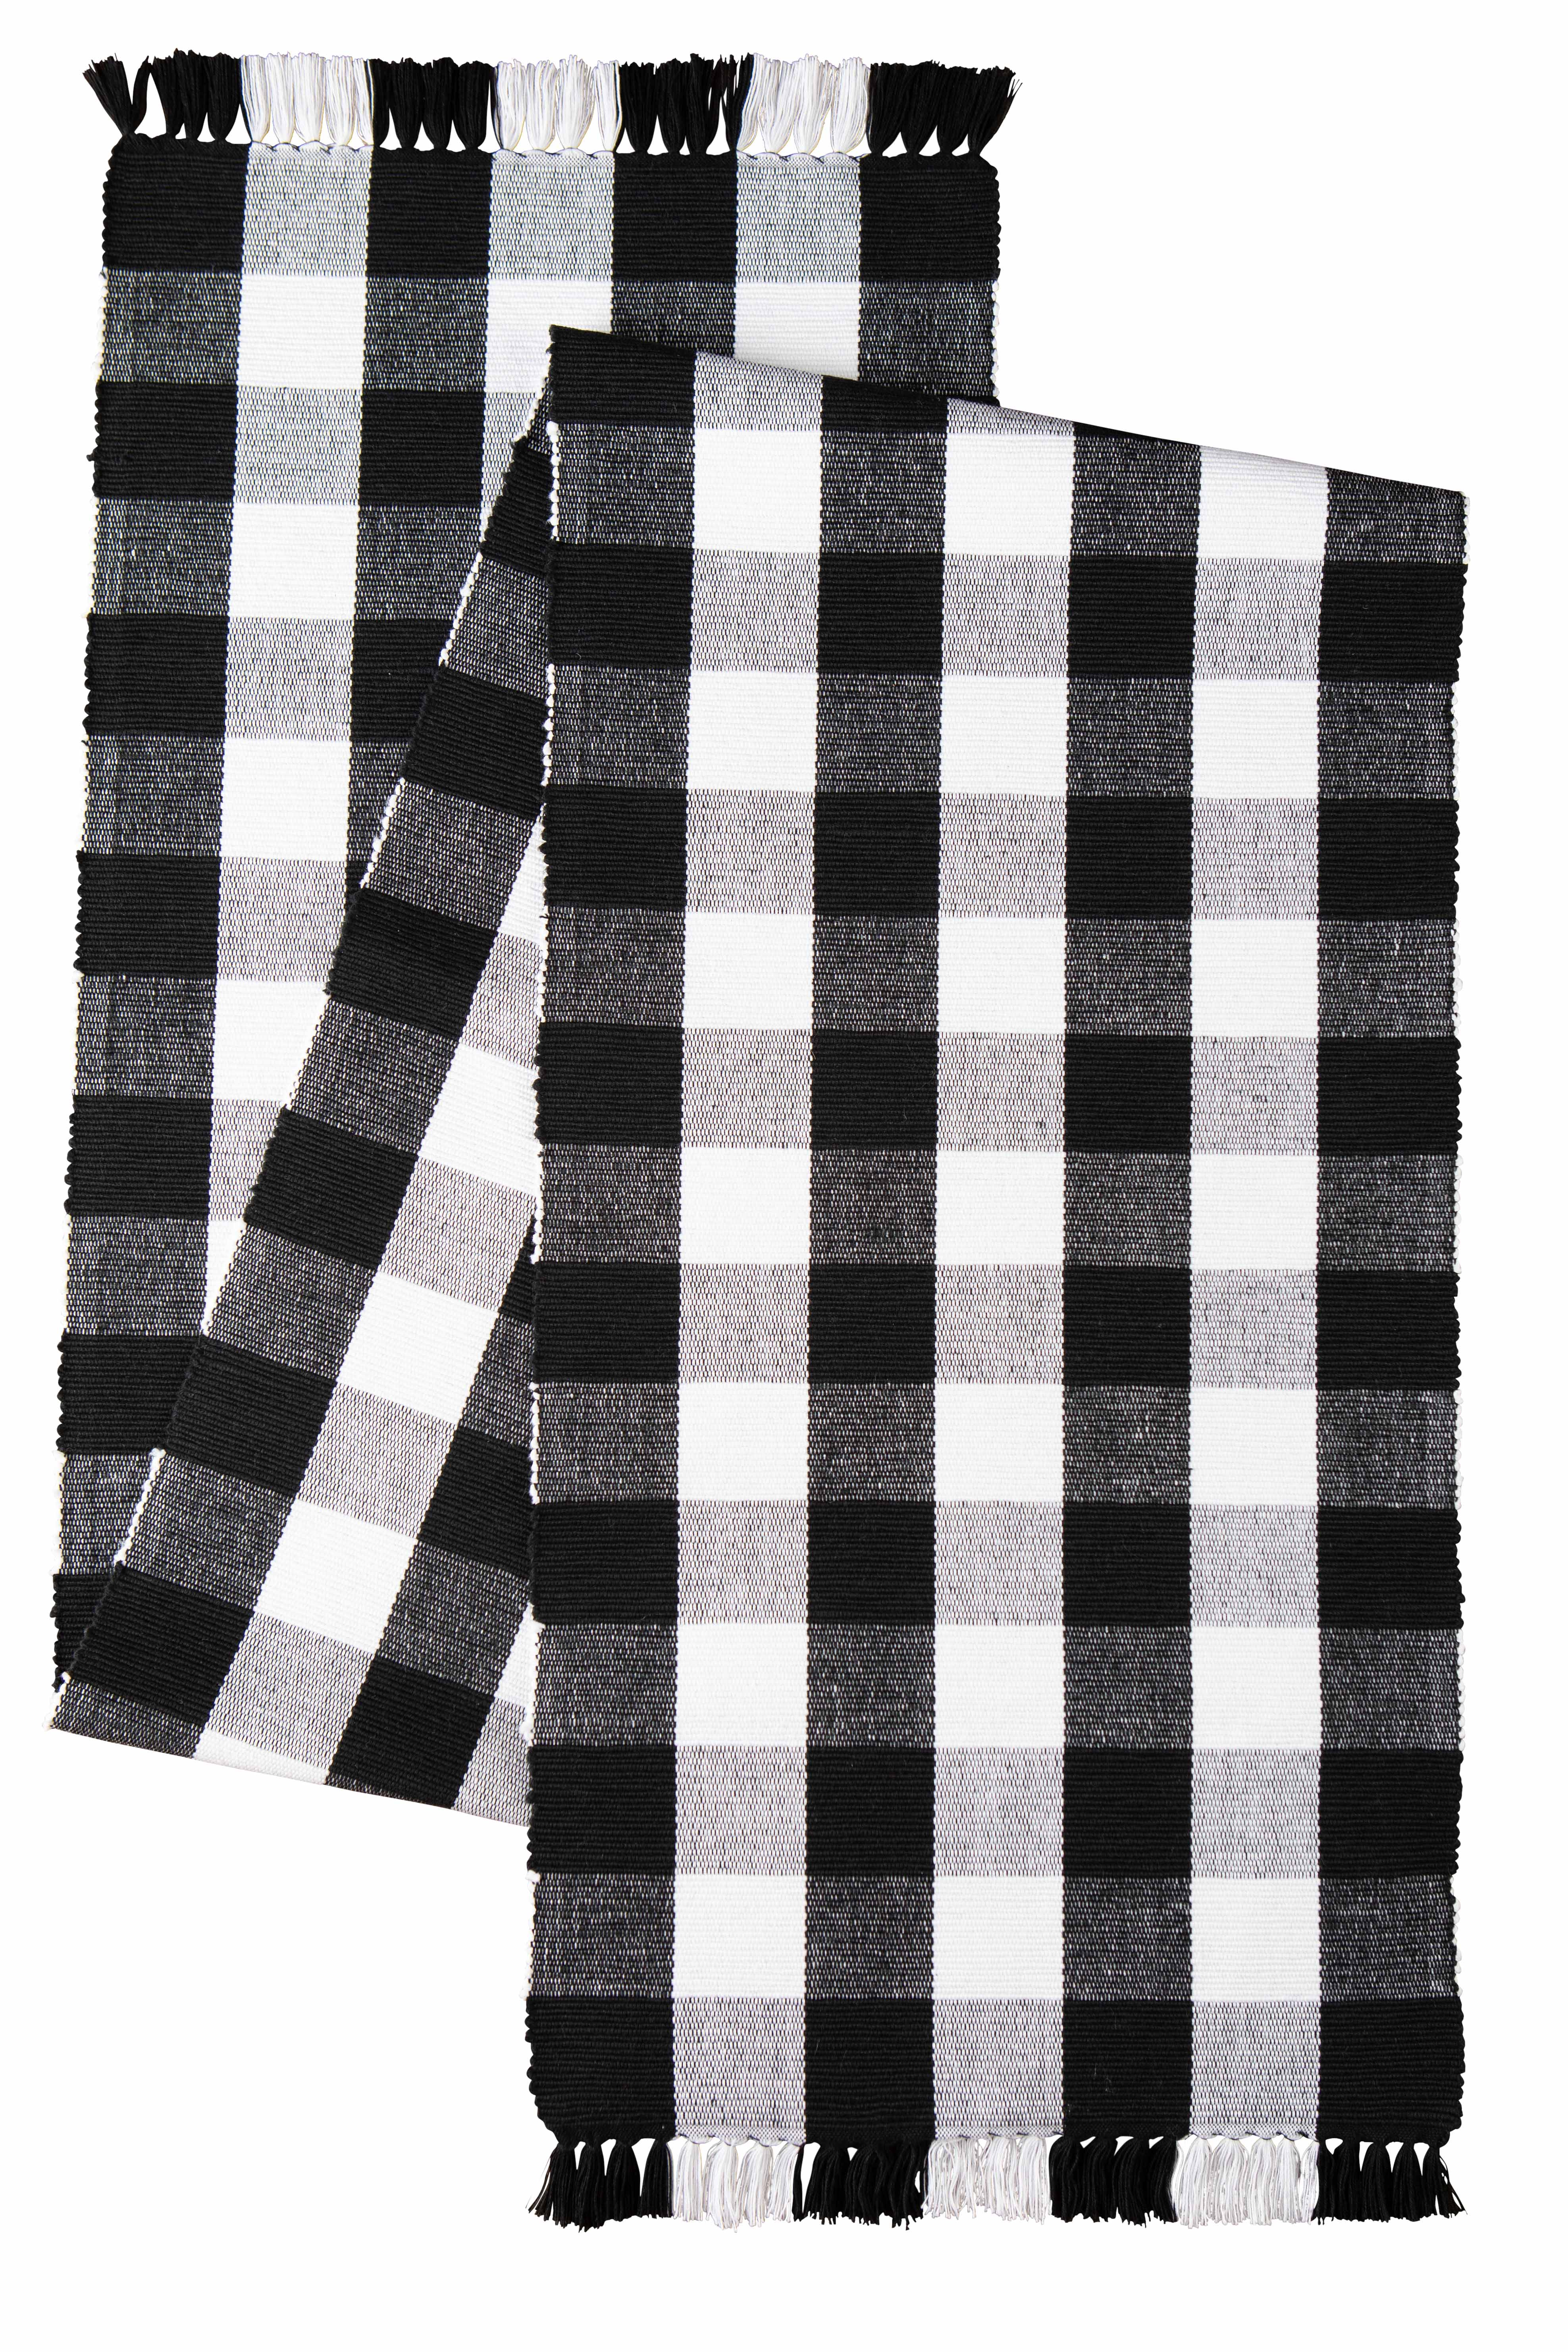 Mainstays 100 Cotton Table Runner Black And White Buffalo Plaid 1 Piece 13 In X 72 In Walmart Com Walmart Com